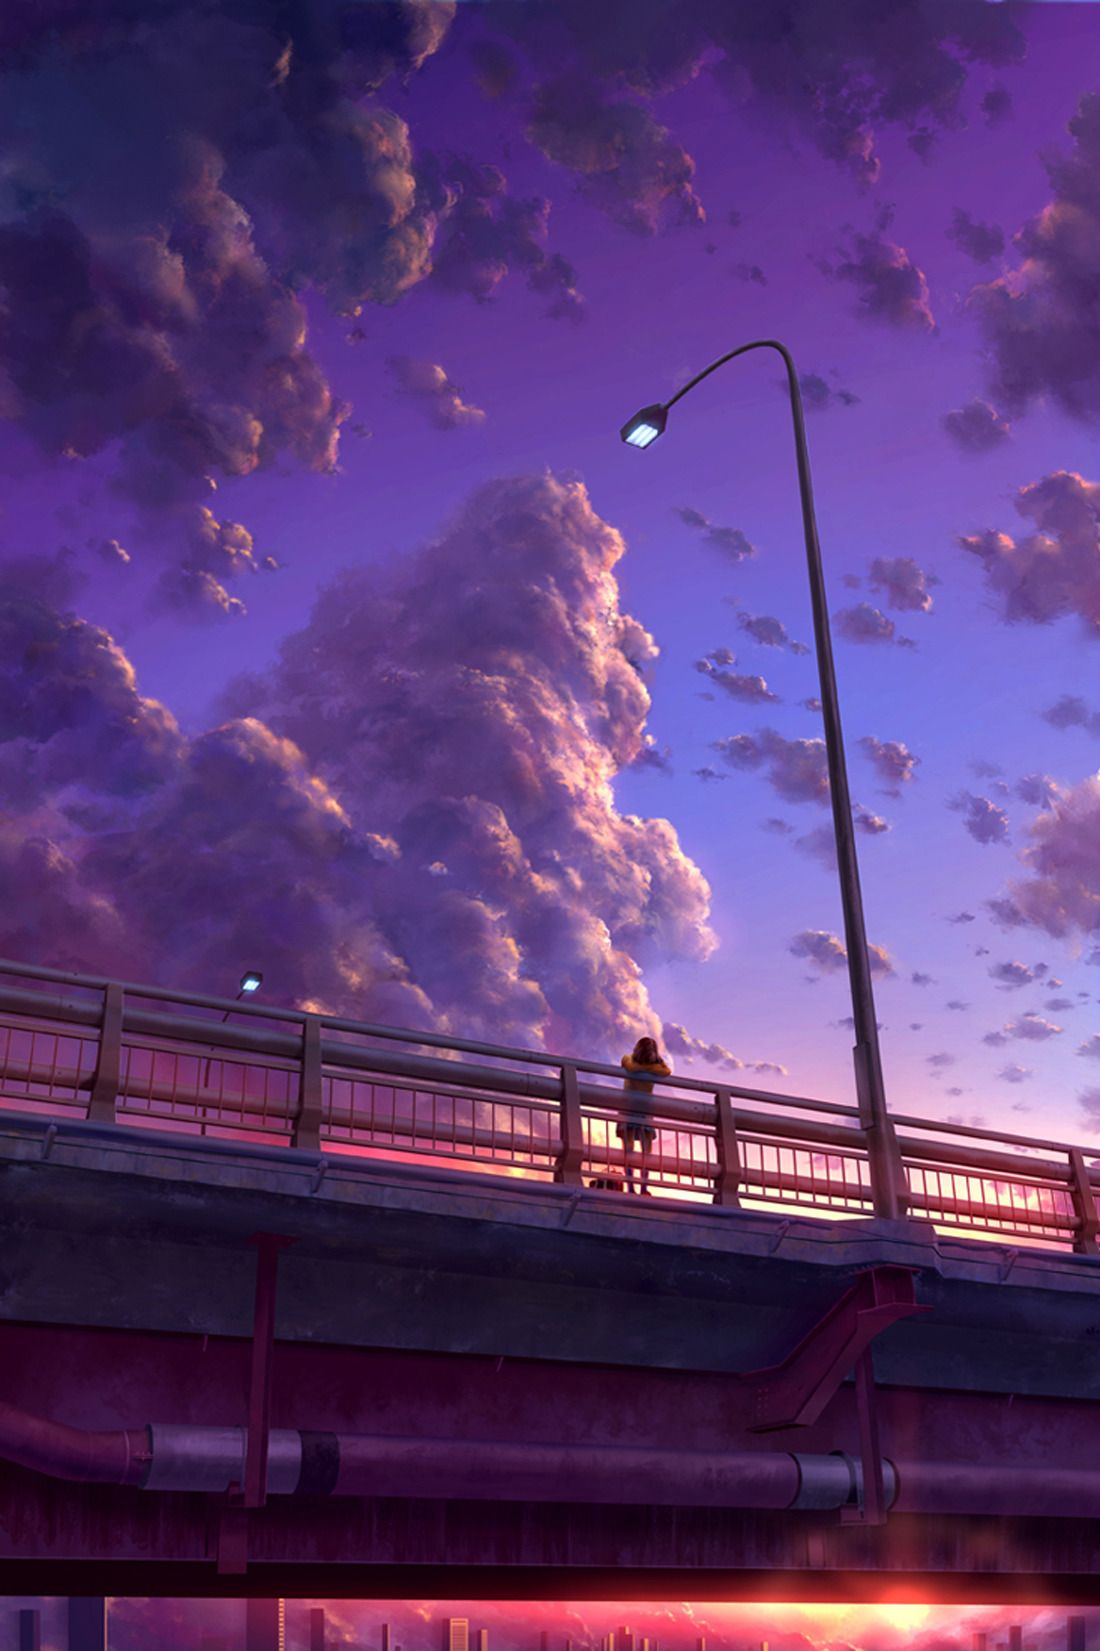 The Art Of Animation — Kaitan Anime scenery, Anime